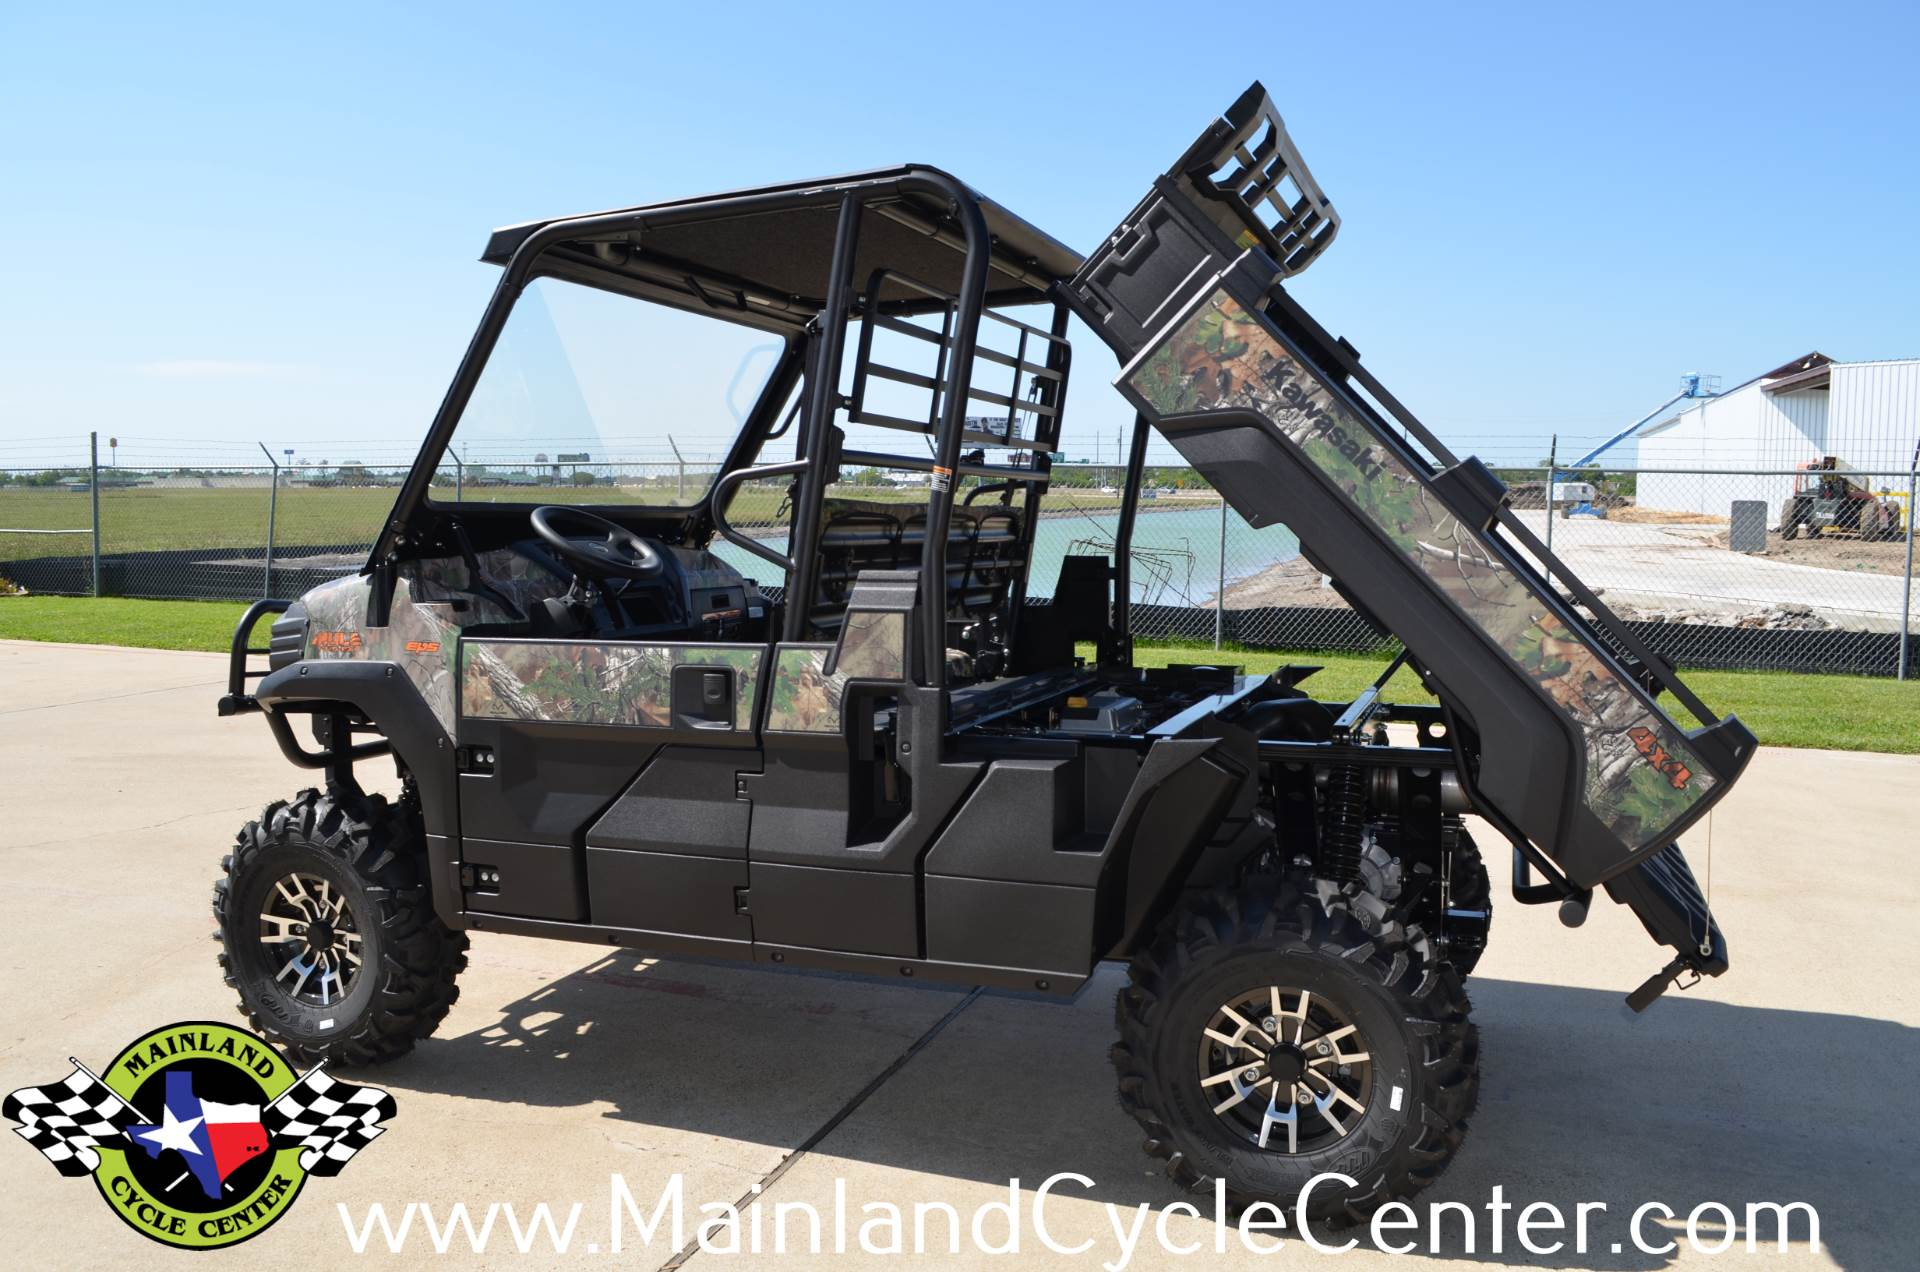 2016 Kawasaki Mule Pro-FX EPS Camo in La Marque, Texas - Photo 22